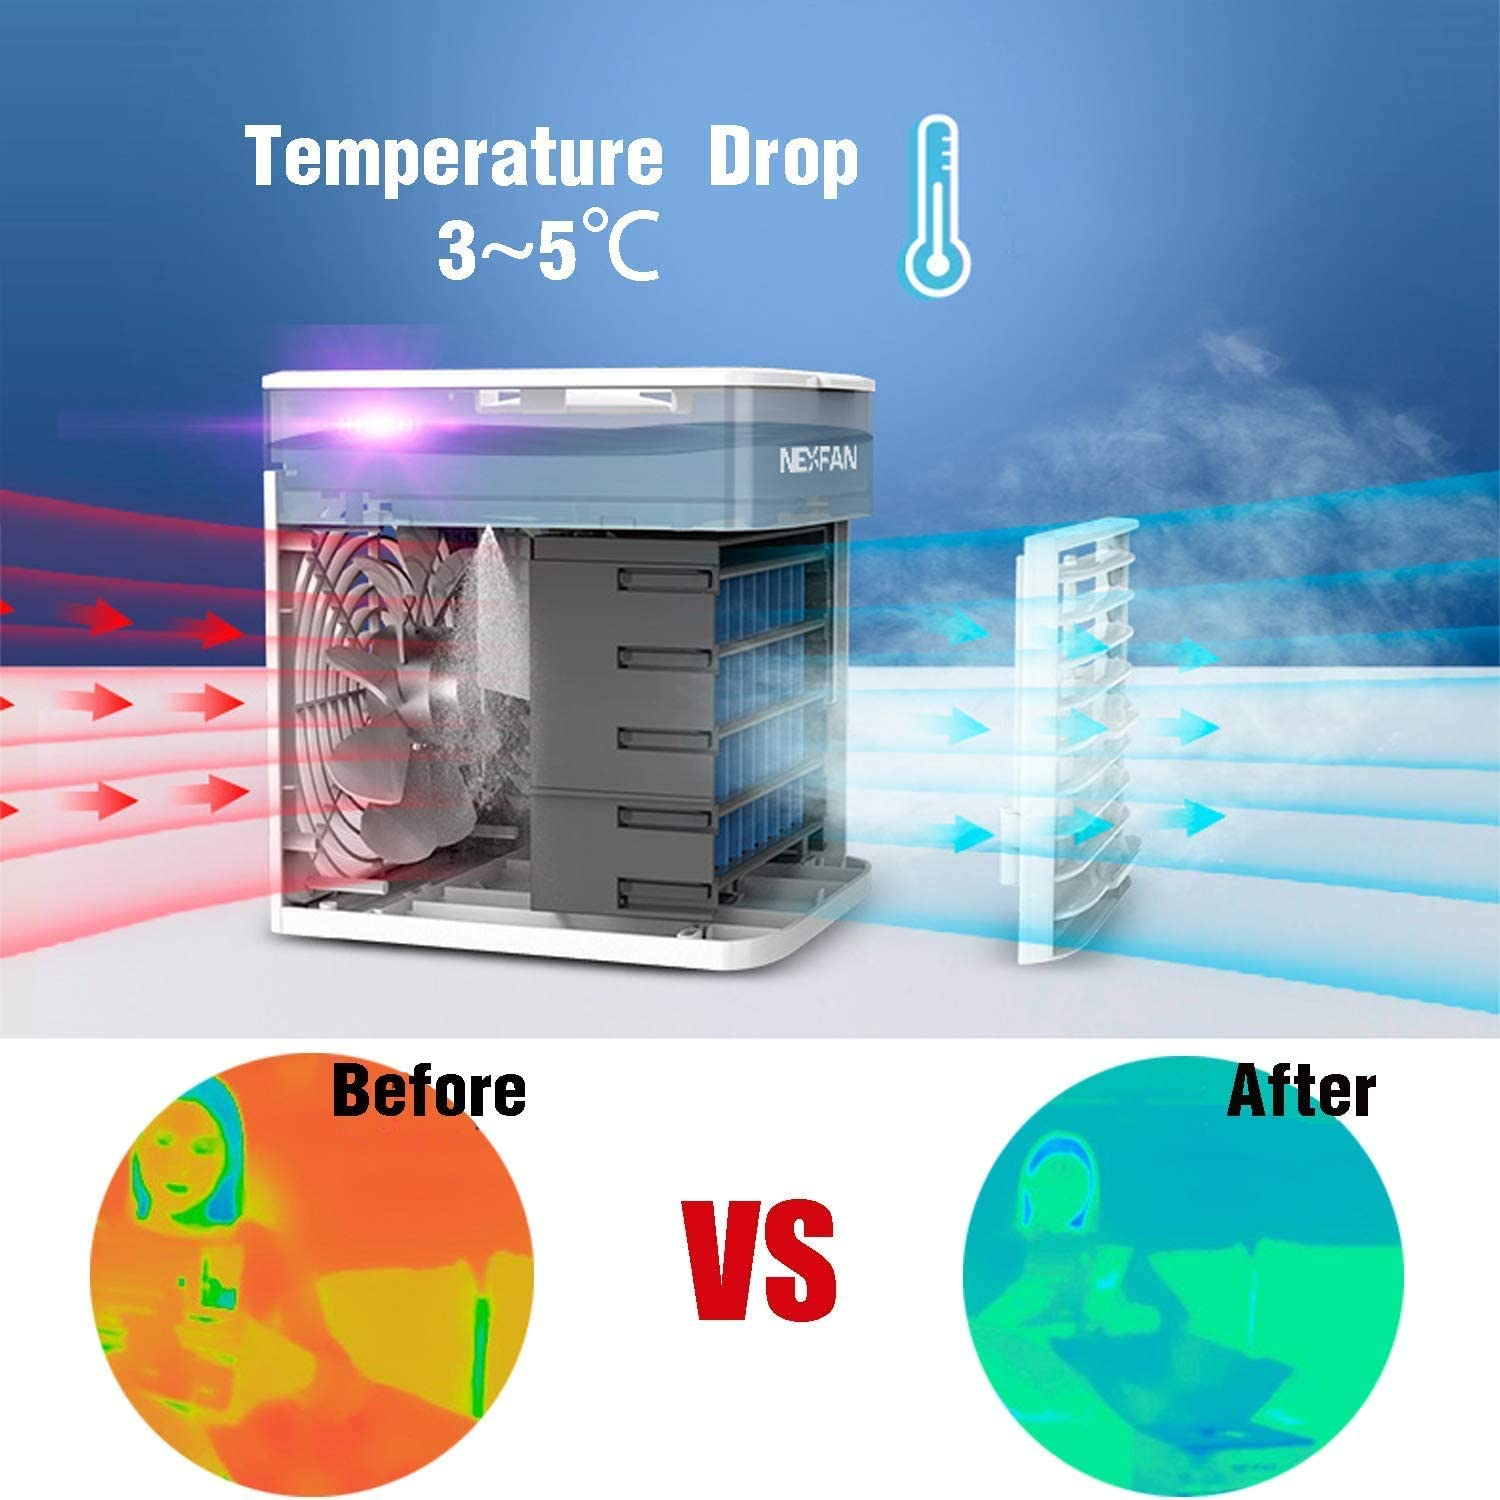 YTDTKJ 2020 Mini Cube Air Conditioner Desktop Air Cooler Personal Mobile Chiller Fan Portable USB Humidifier 7 Colors LED Portable Chiller for Indoor Outdoor Wind Speed Direction Adjustable